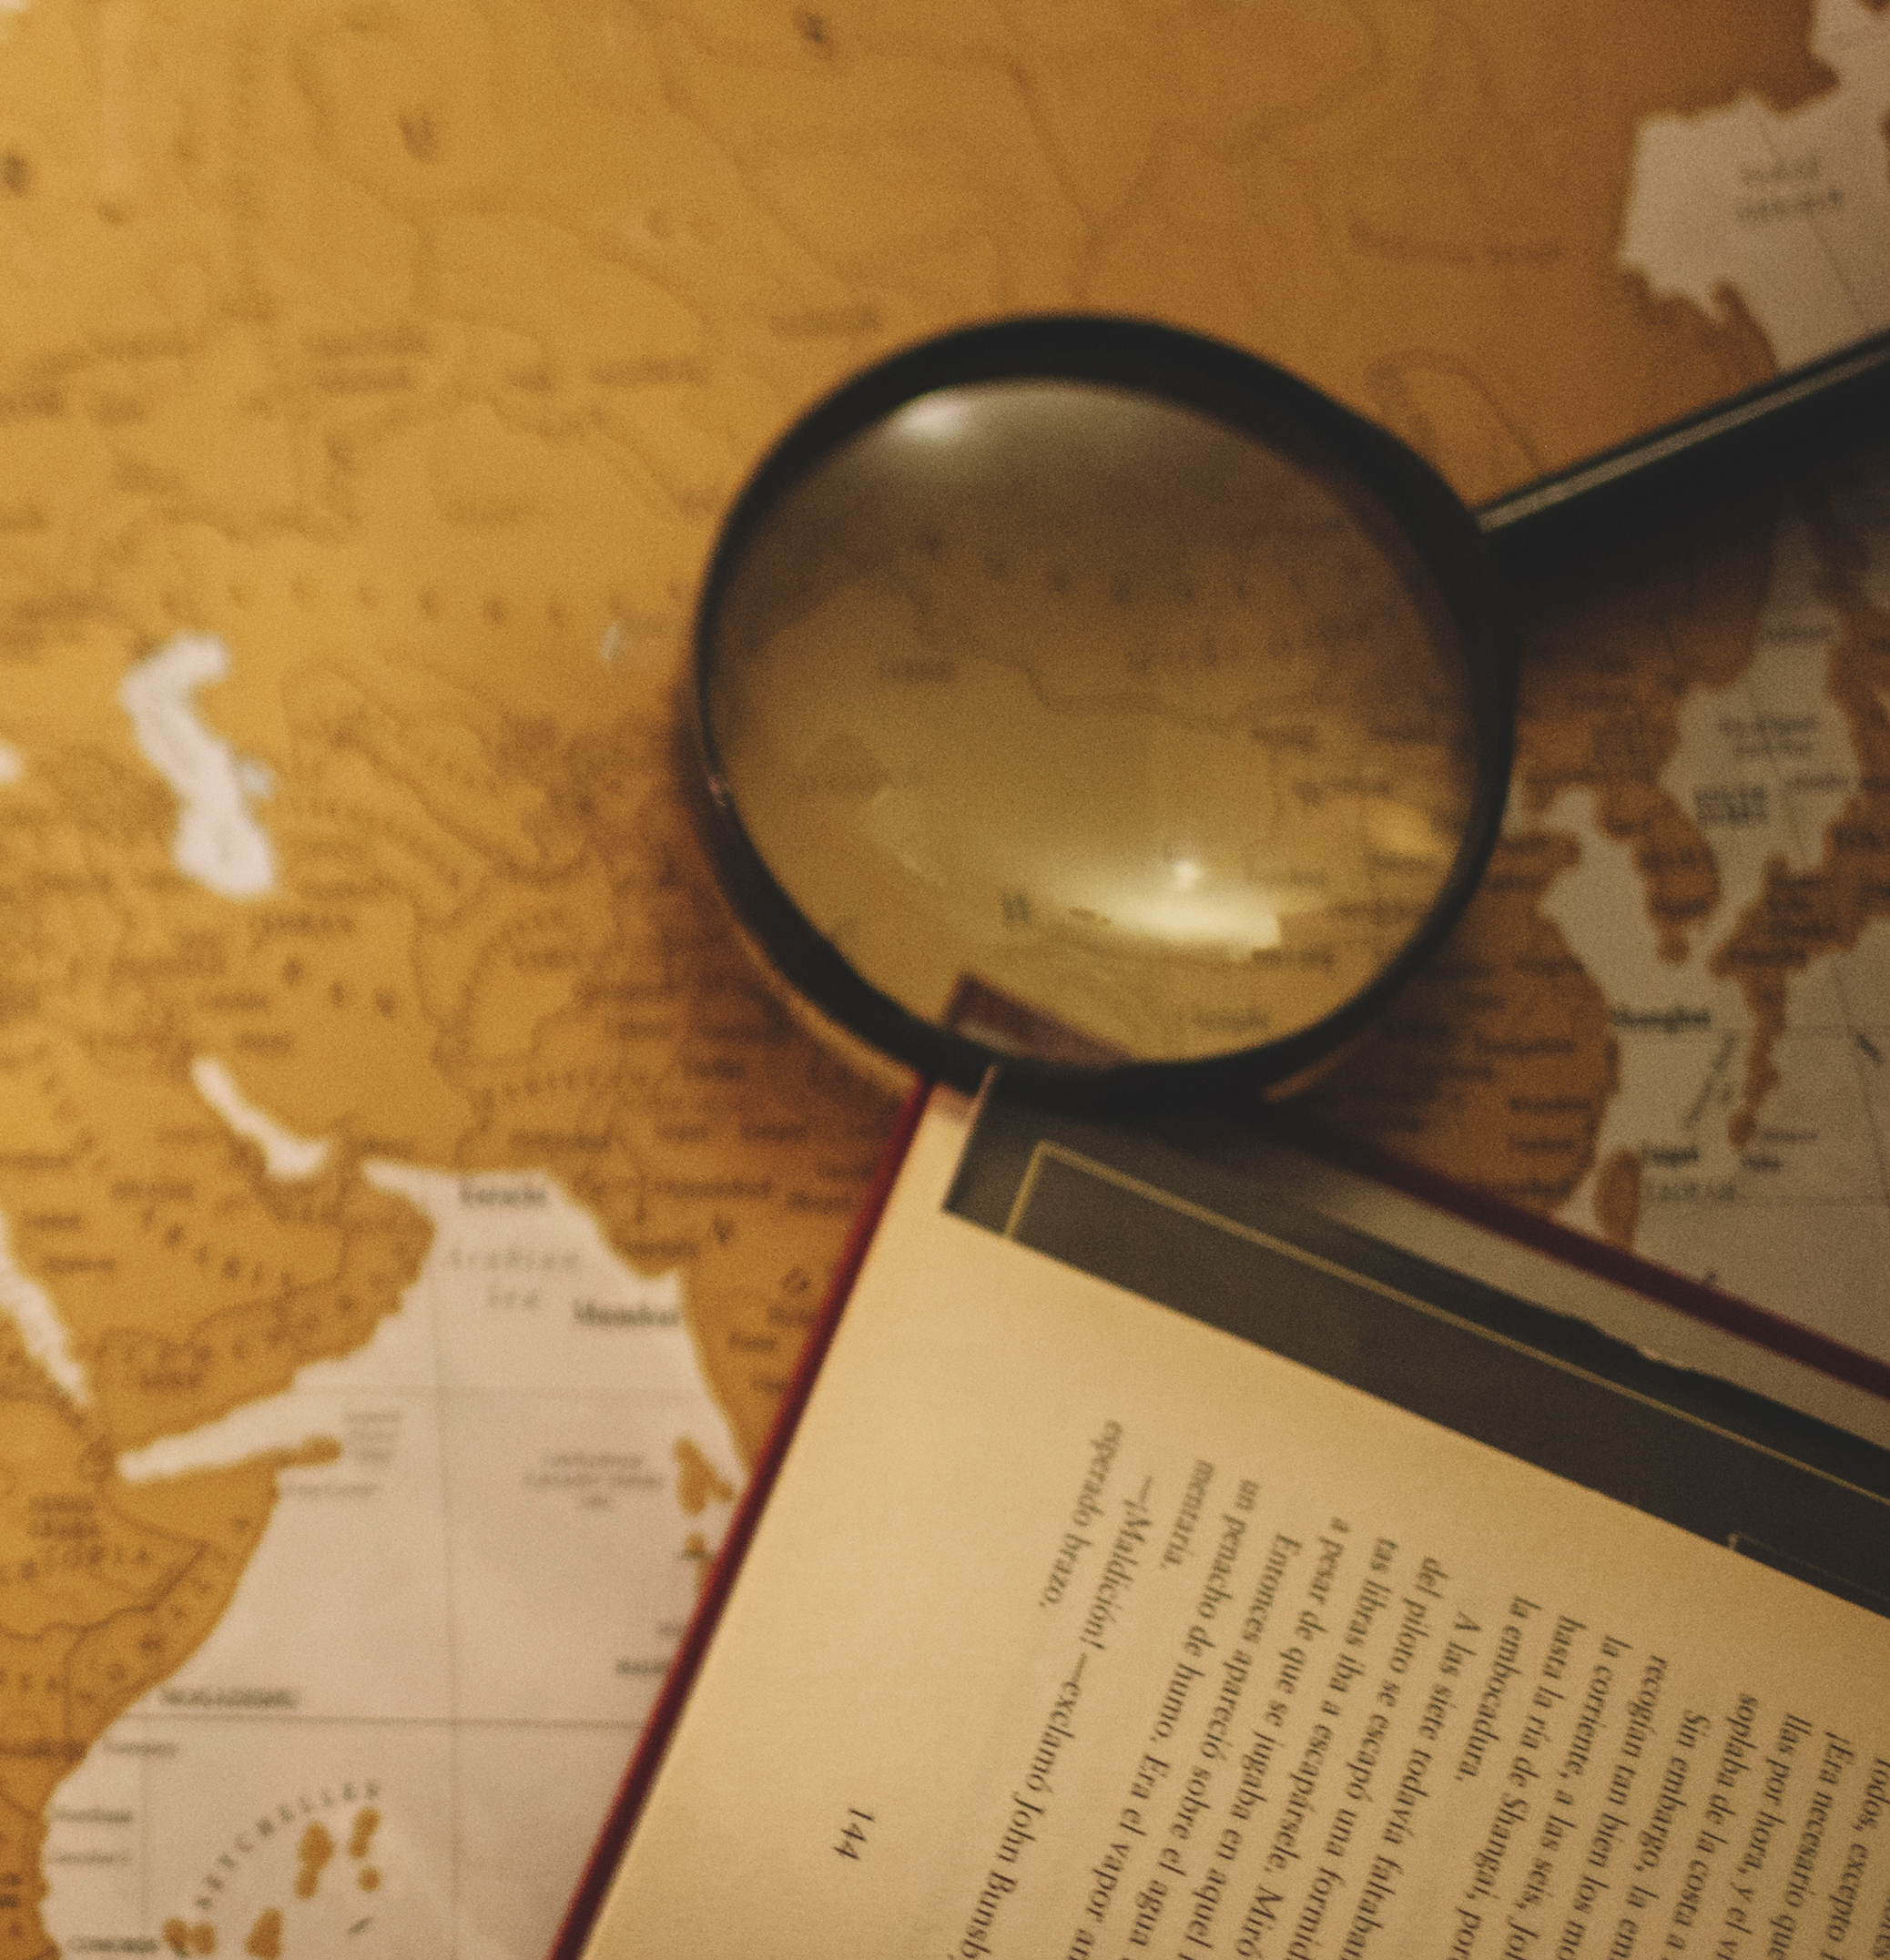 magnifying glass and book on top of map